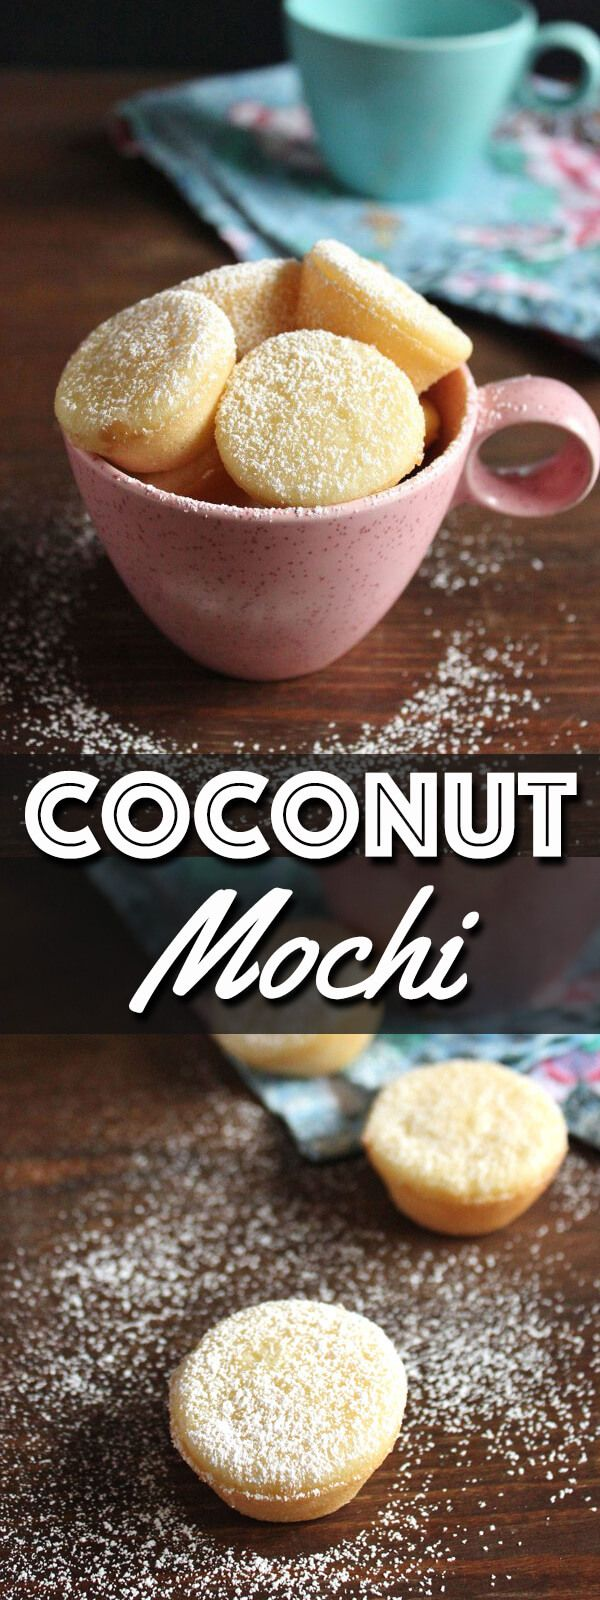 6116 Best Desserts Sweets Images On Pinterest Cooking Food Sweet Silver Queen Montes 50g Coconut Mochi